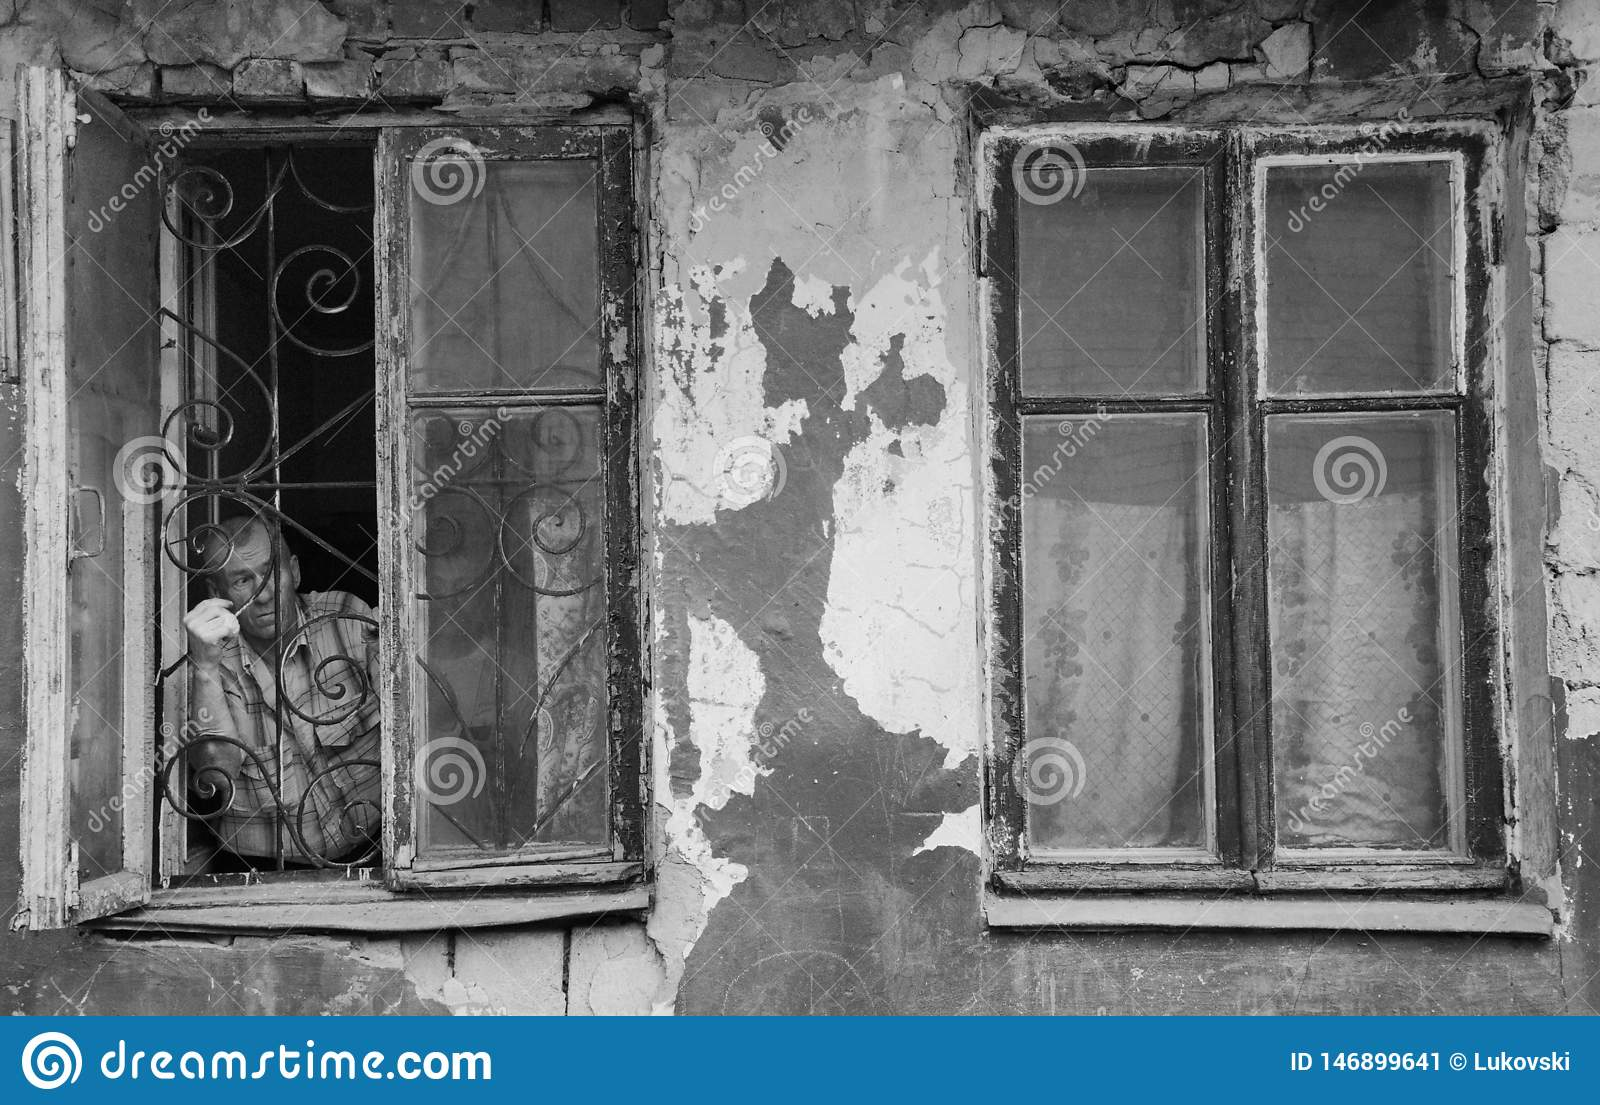 A man in a poor quarter looking out the window of an old house